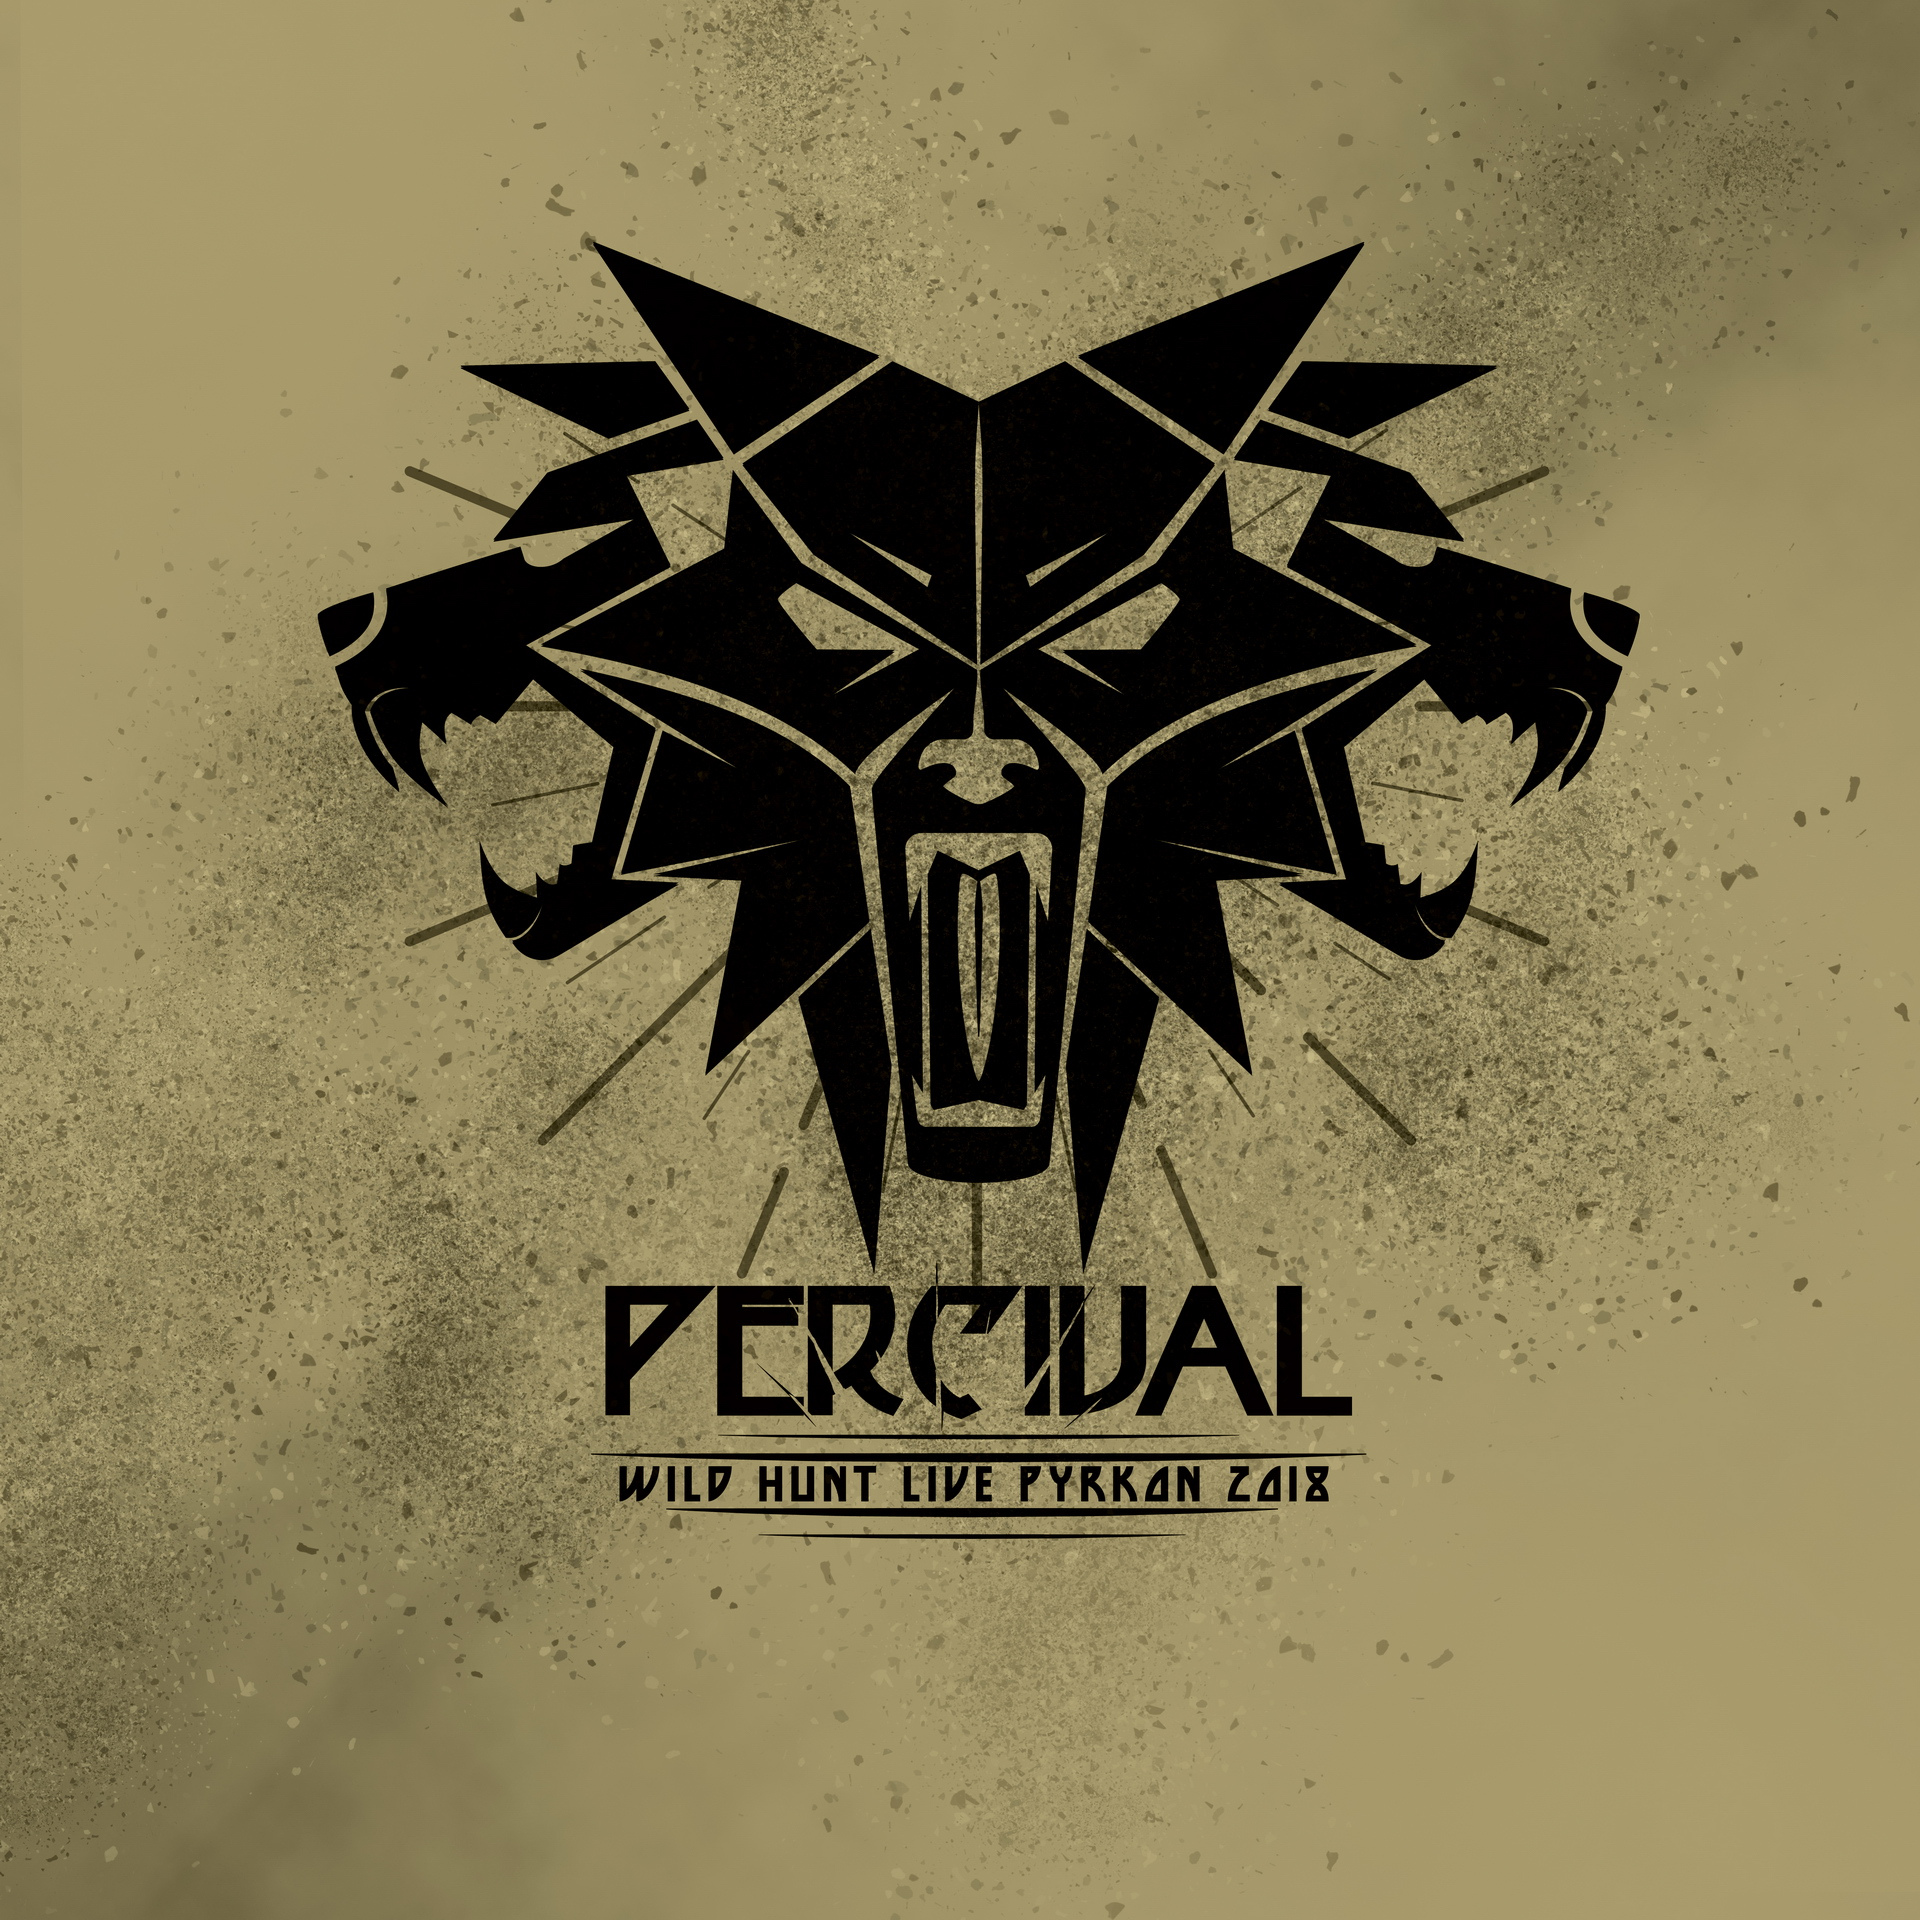 Percival - Wild Hunt Live: Pyrkon 2018 [RSD Drops Aug 2020]